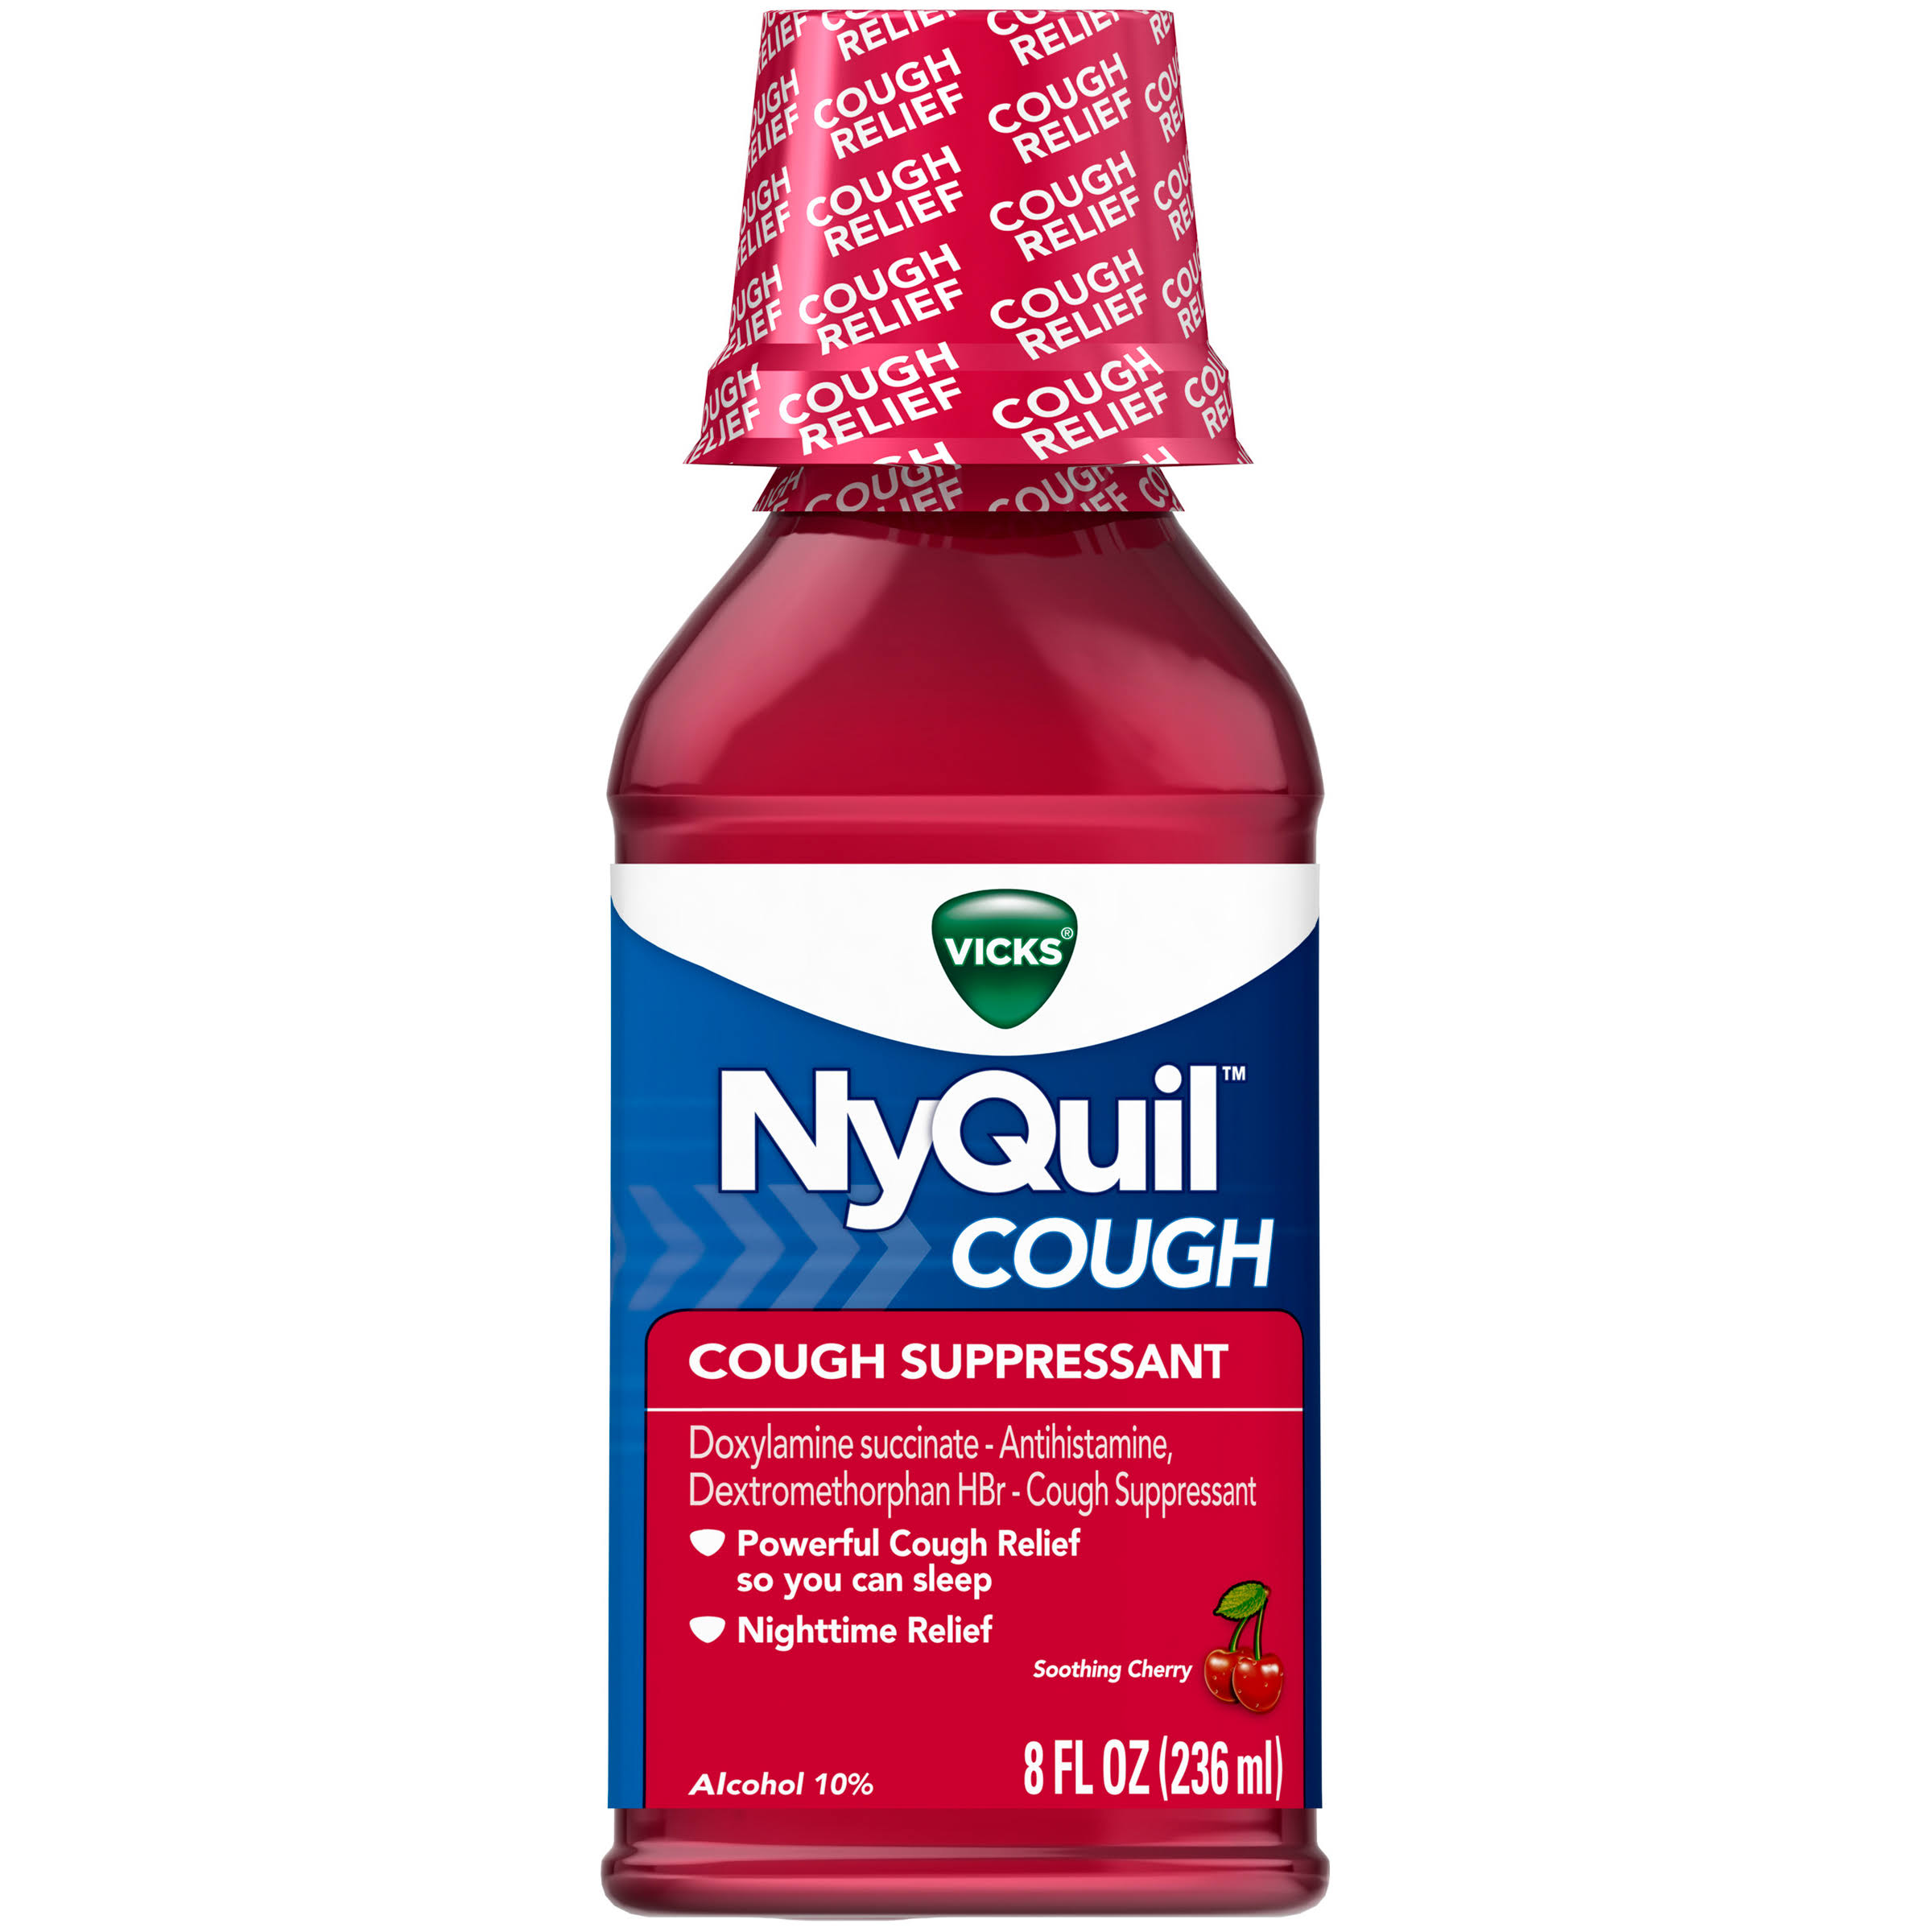 Vicks Nyquil Cough Relief Liquid - Cherry, 240ml